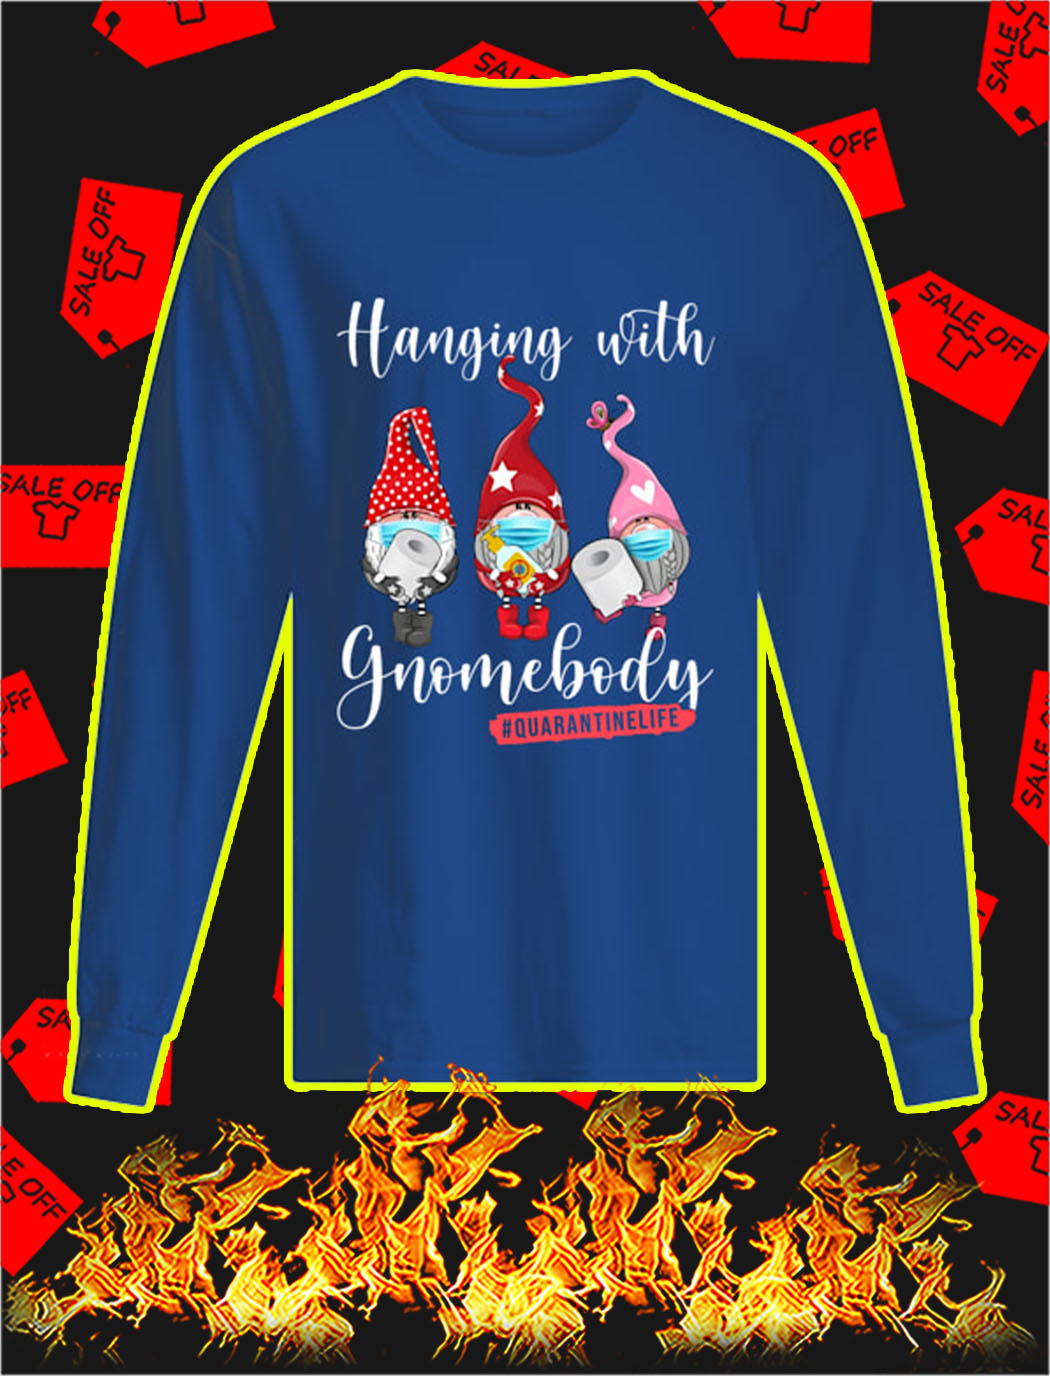 Hanging with gnomebody quarantine life longsleeve tee